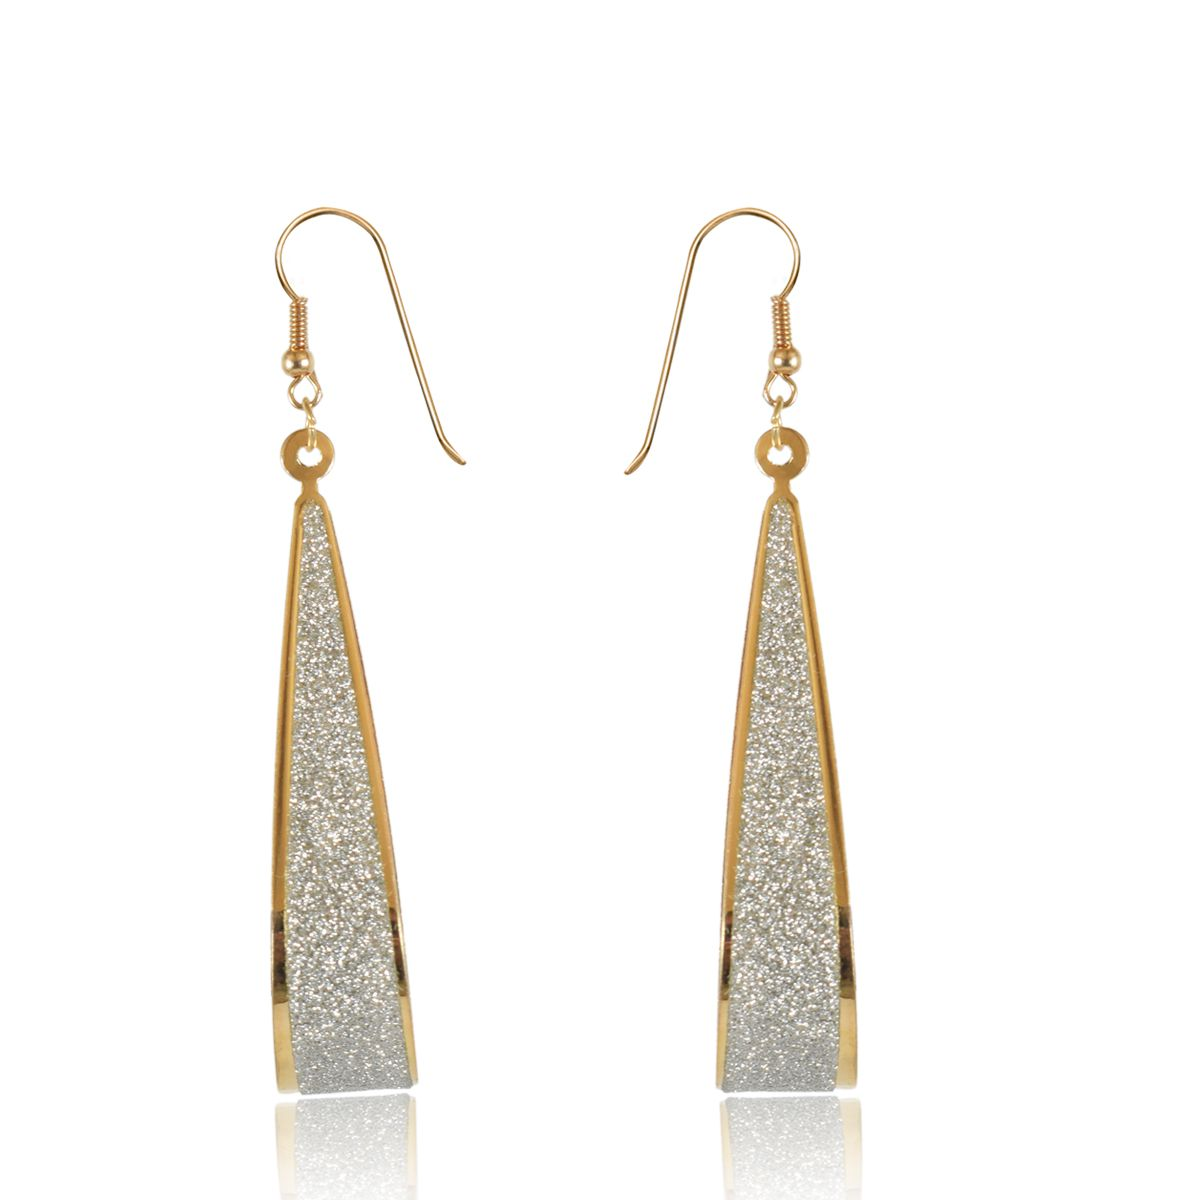 Slamay Fashion Gold Plated Earring Gift for Girl